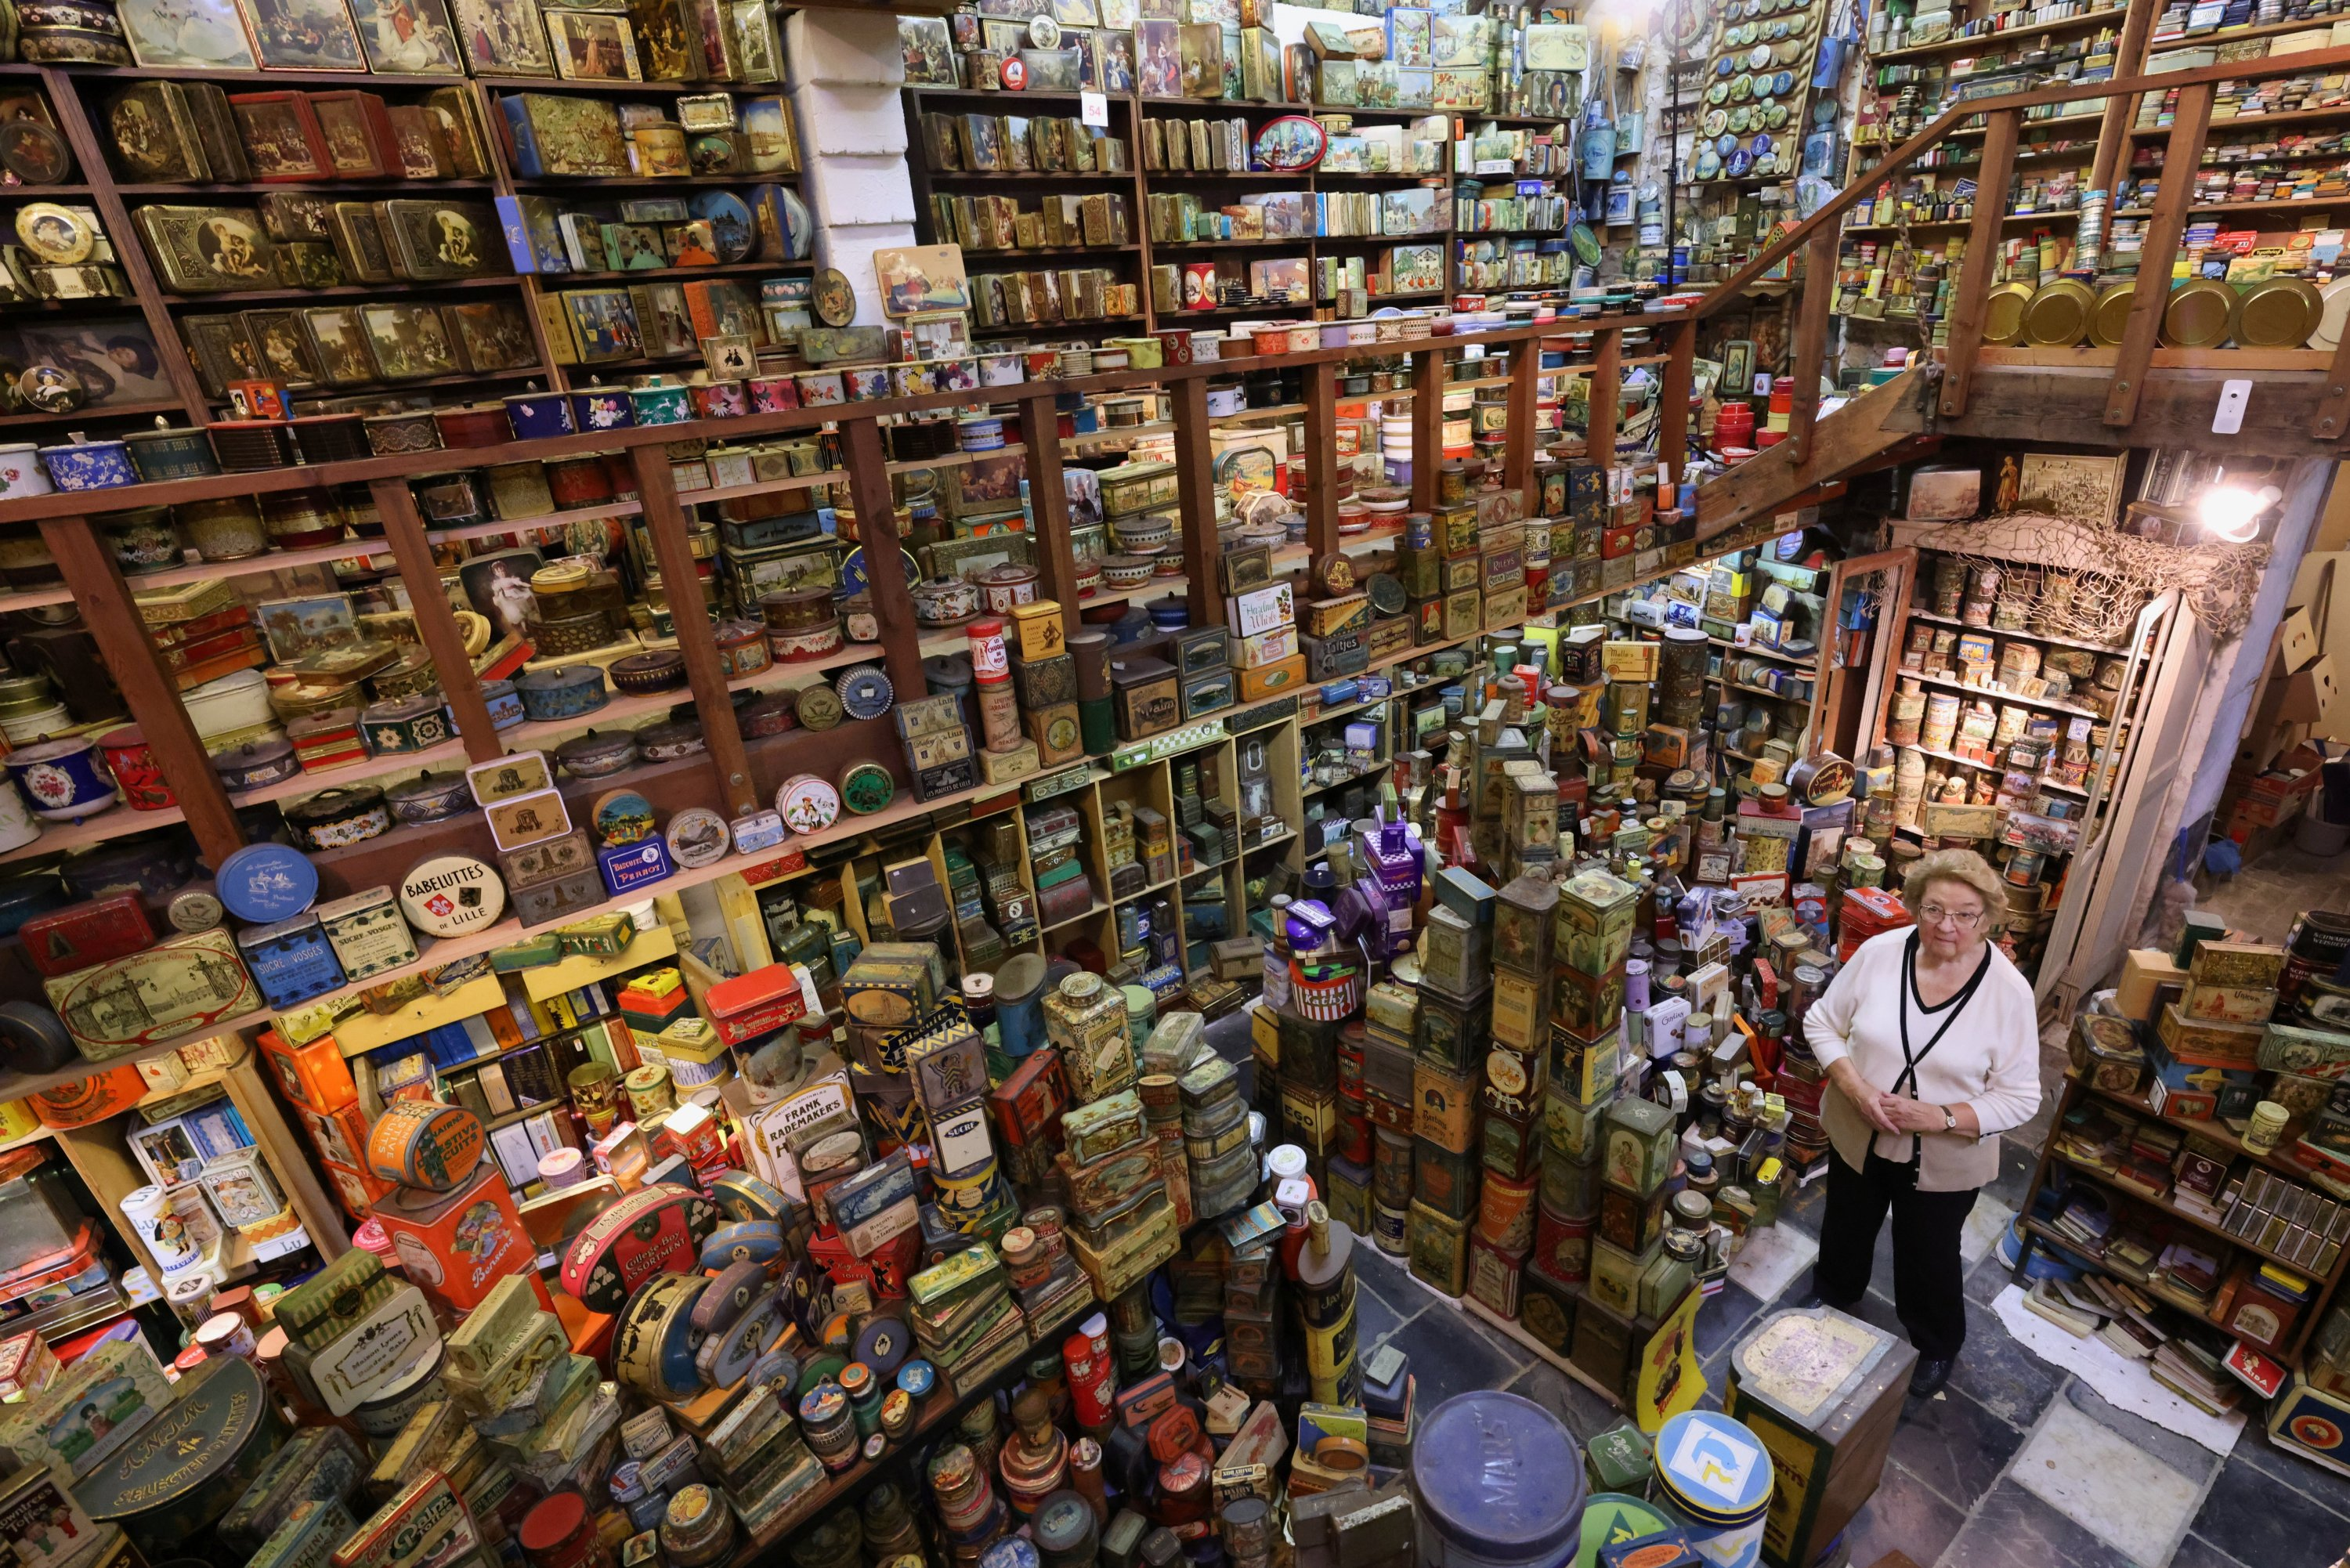 Yvette Dardenne, 83, stands among thousands of vintage lithographed tin boxes, which are part of a huge collection of almost 60,000 pieces started 30 years ago, at her house in Grand-Hallet, Belgium, Aug. 5, 2021. (Reuters Photo)